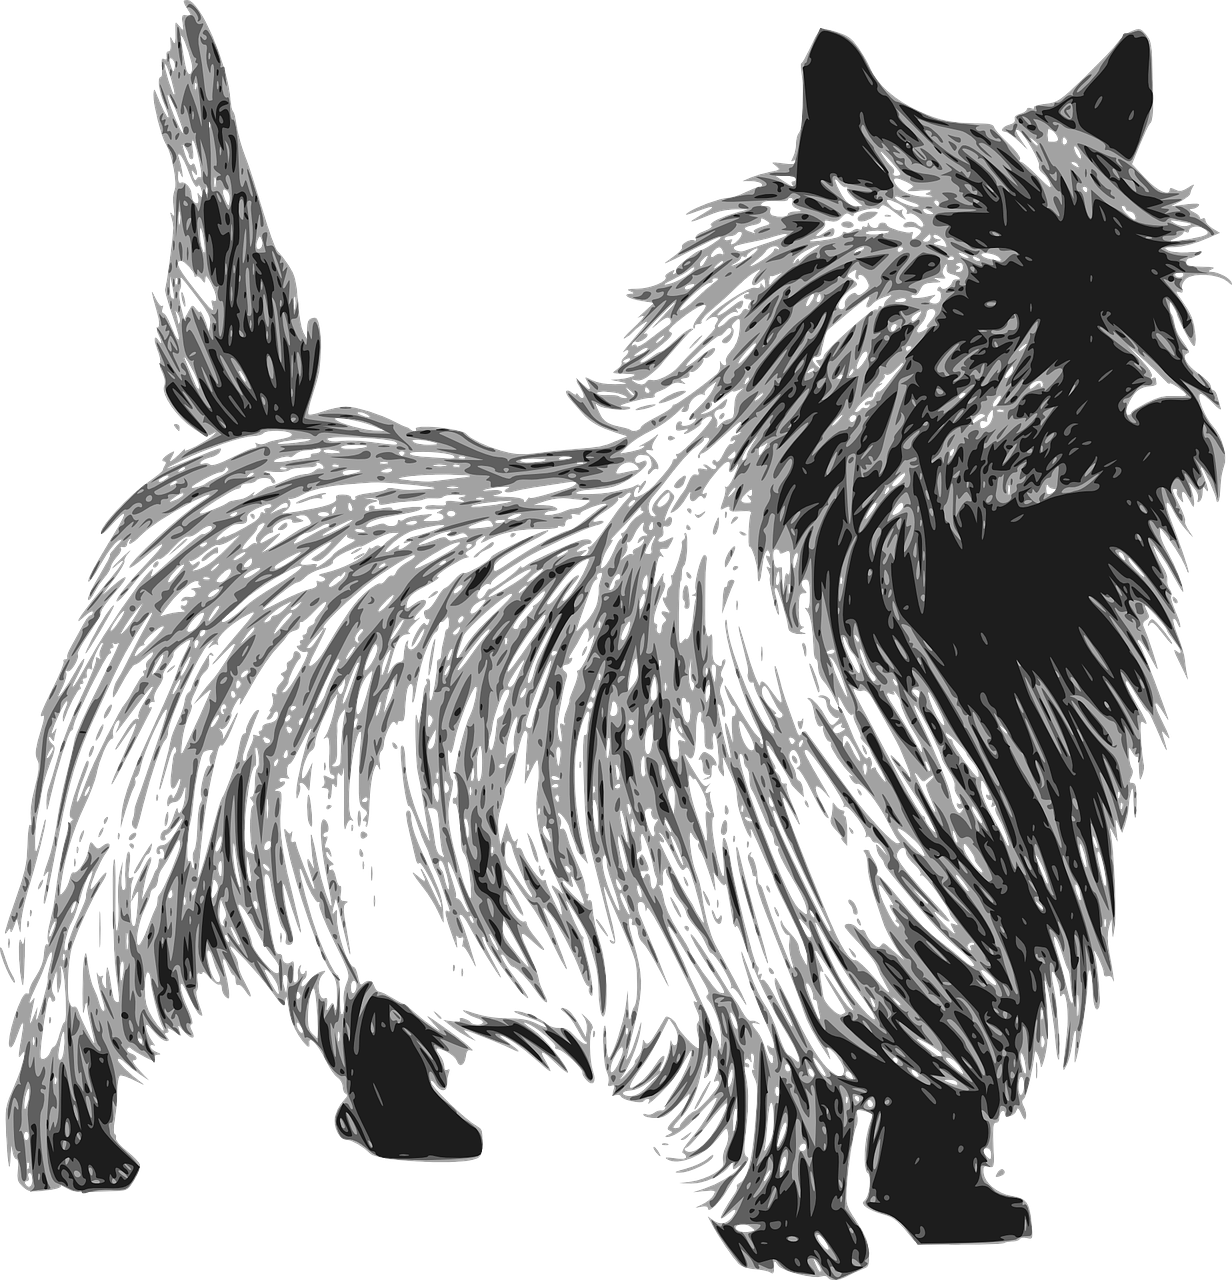 terrier,dog,pet,cairn,breed,animal,friend,doggy,domestic,training,purebred,puppy,obedient,pedigree,pedigreed,companion,mutt,pooch,furry,buddy,pal,best friend,free vector graphics,free pictures, free photos, free images, royalty free, free illustrations, public domain